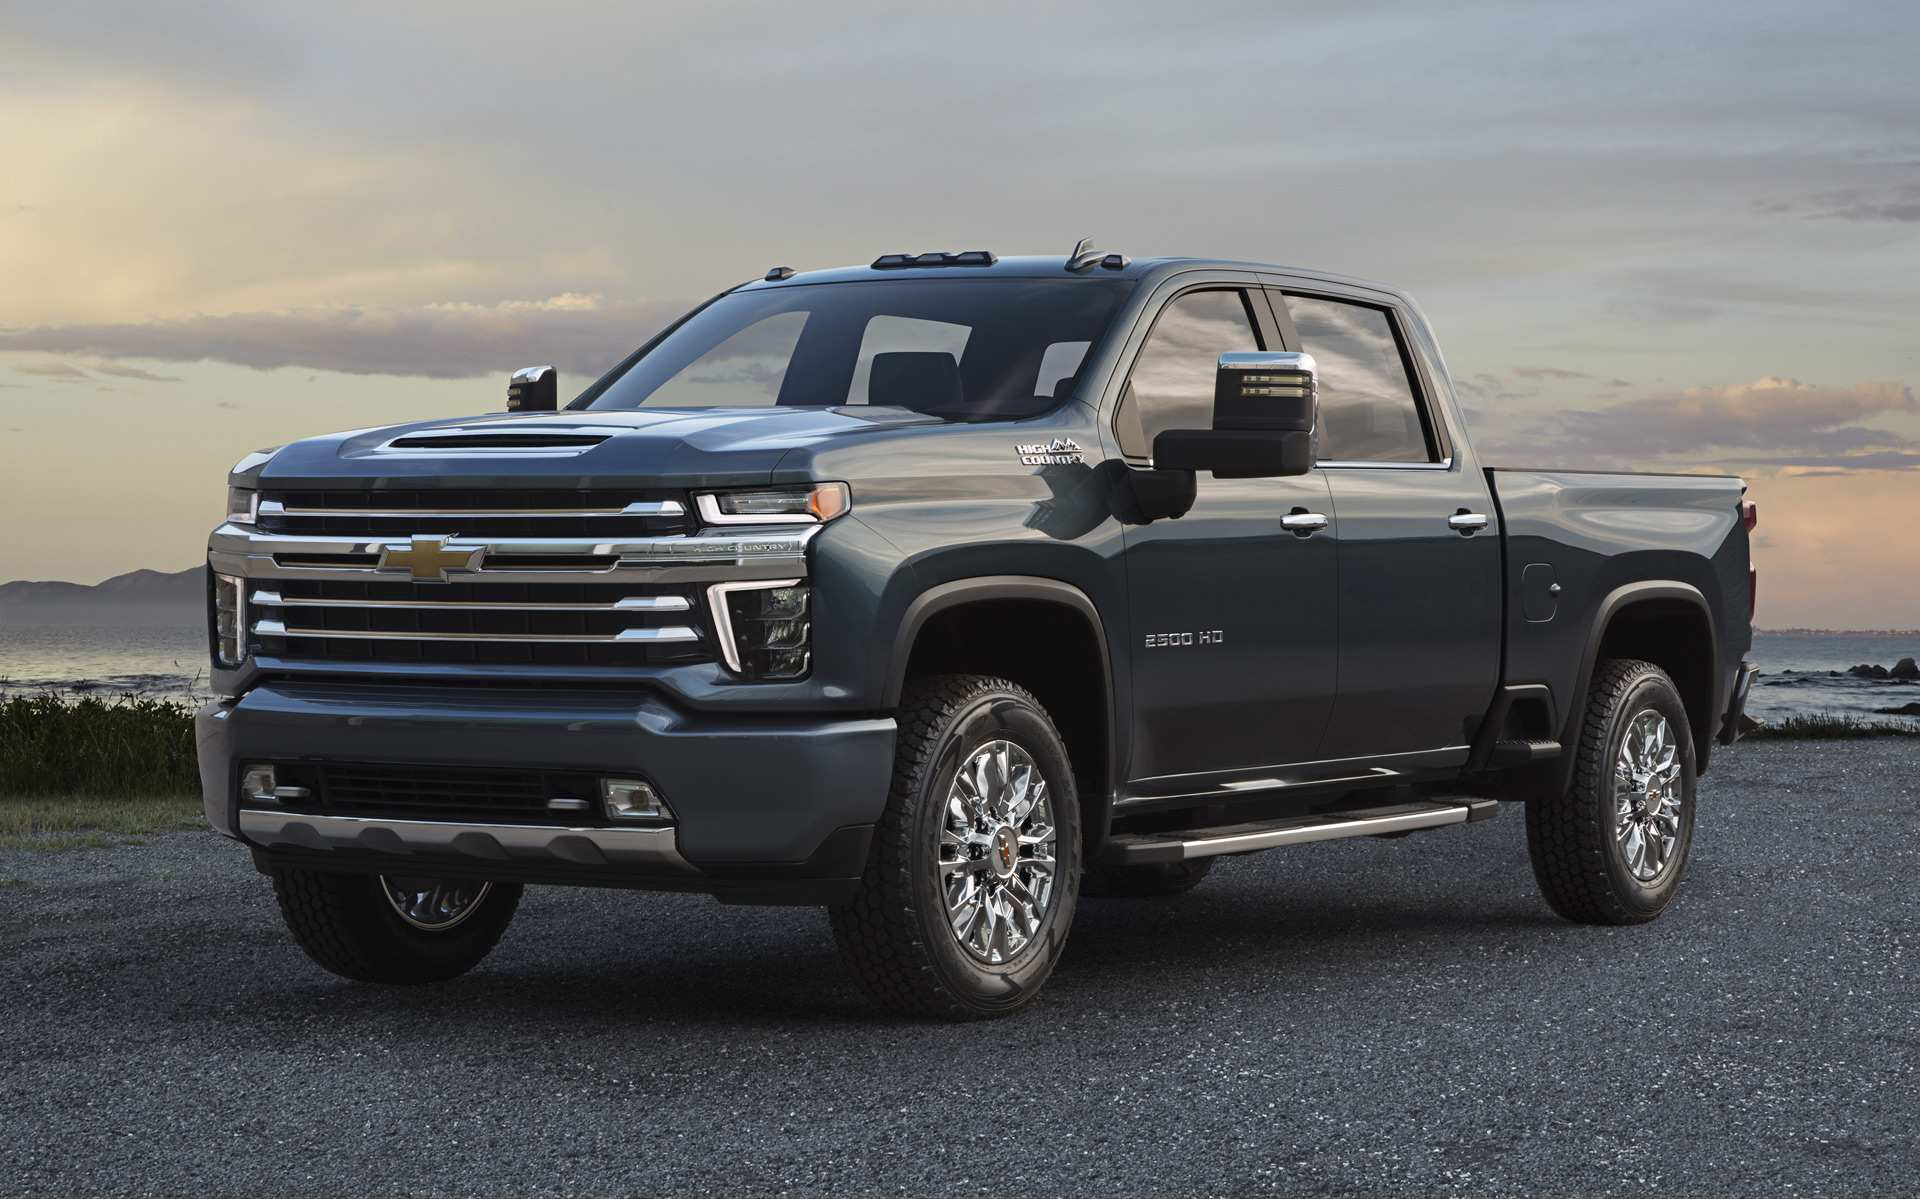 26 All New 2020 Chevrolet Colorado Release Date Model with 2020 Chevrolet Colorado Release Date